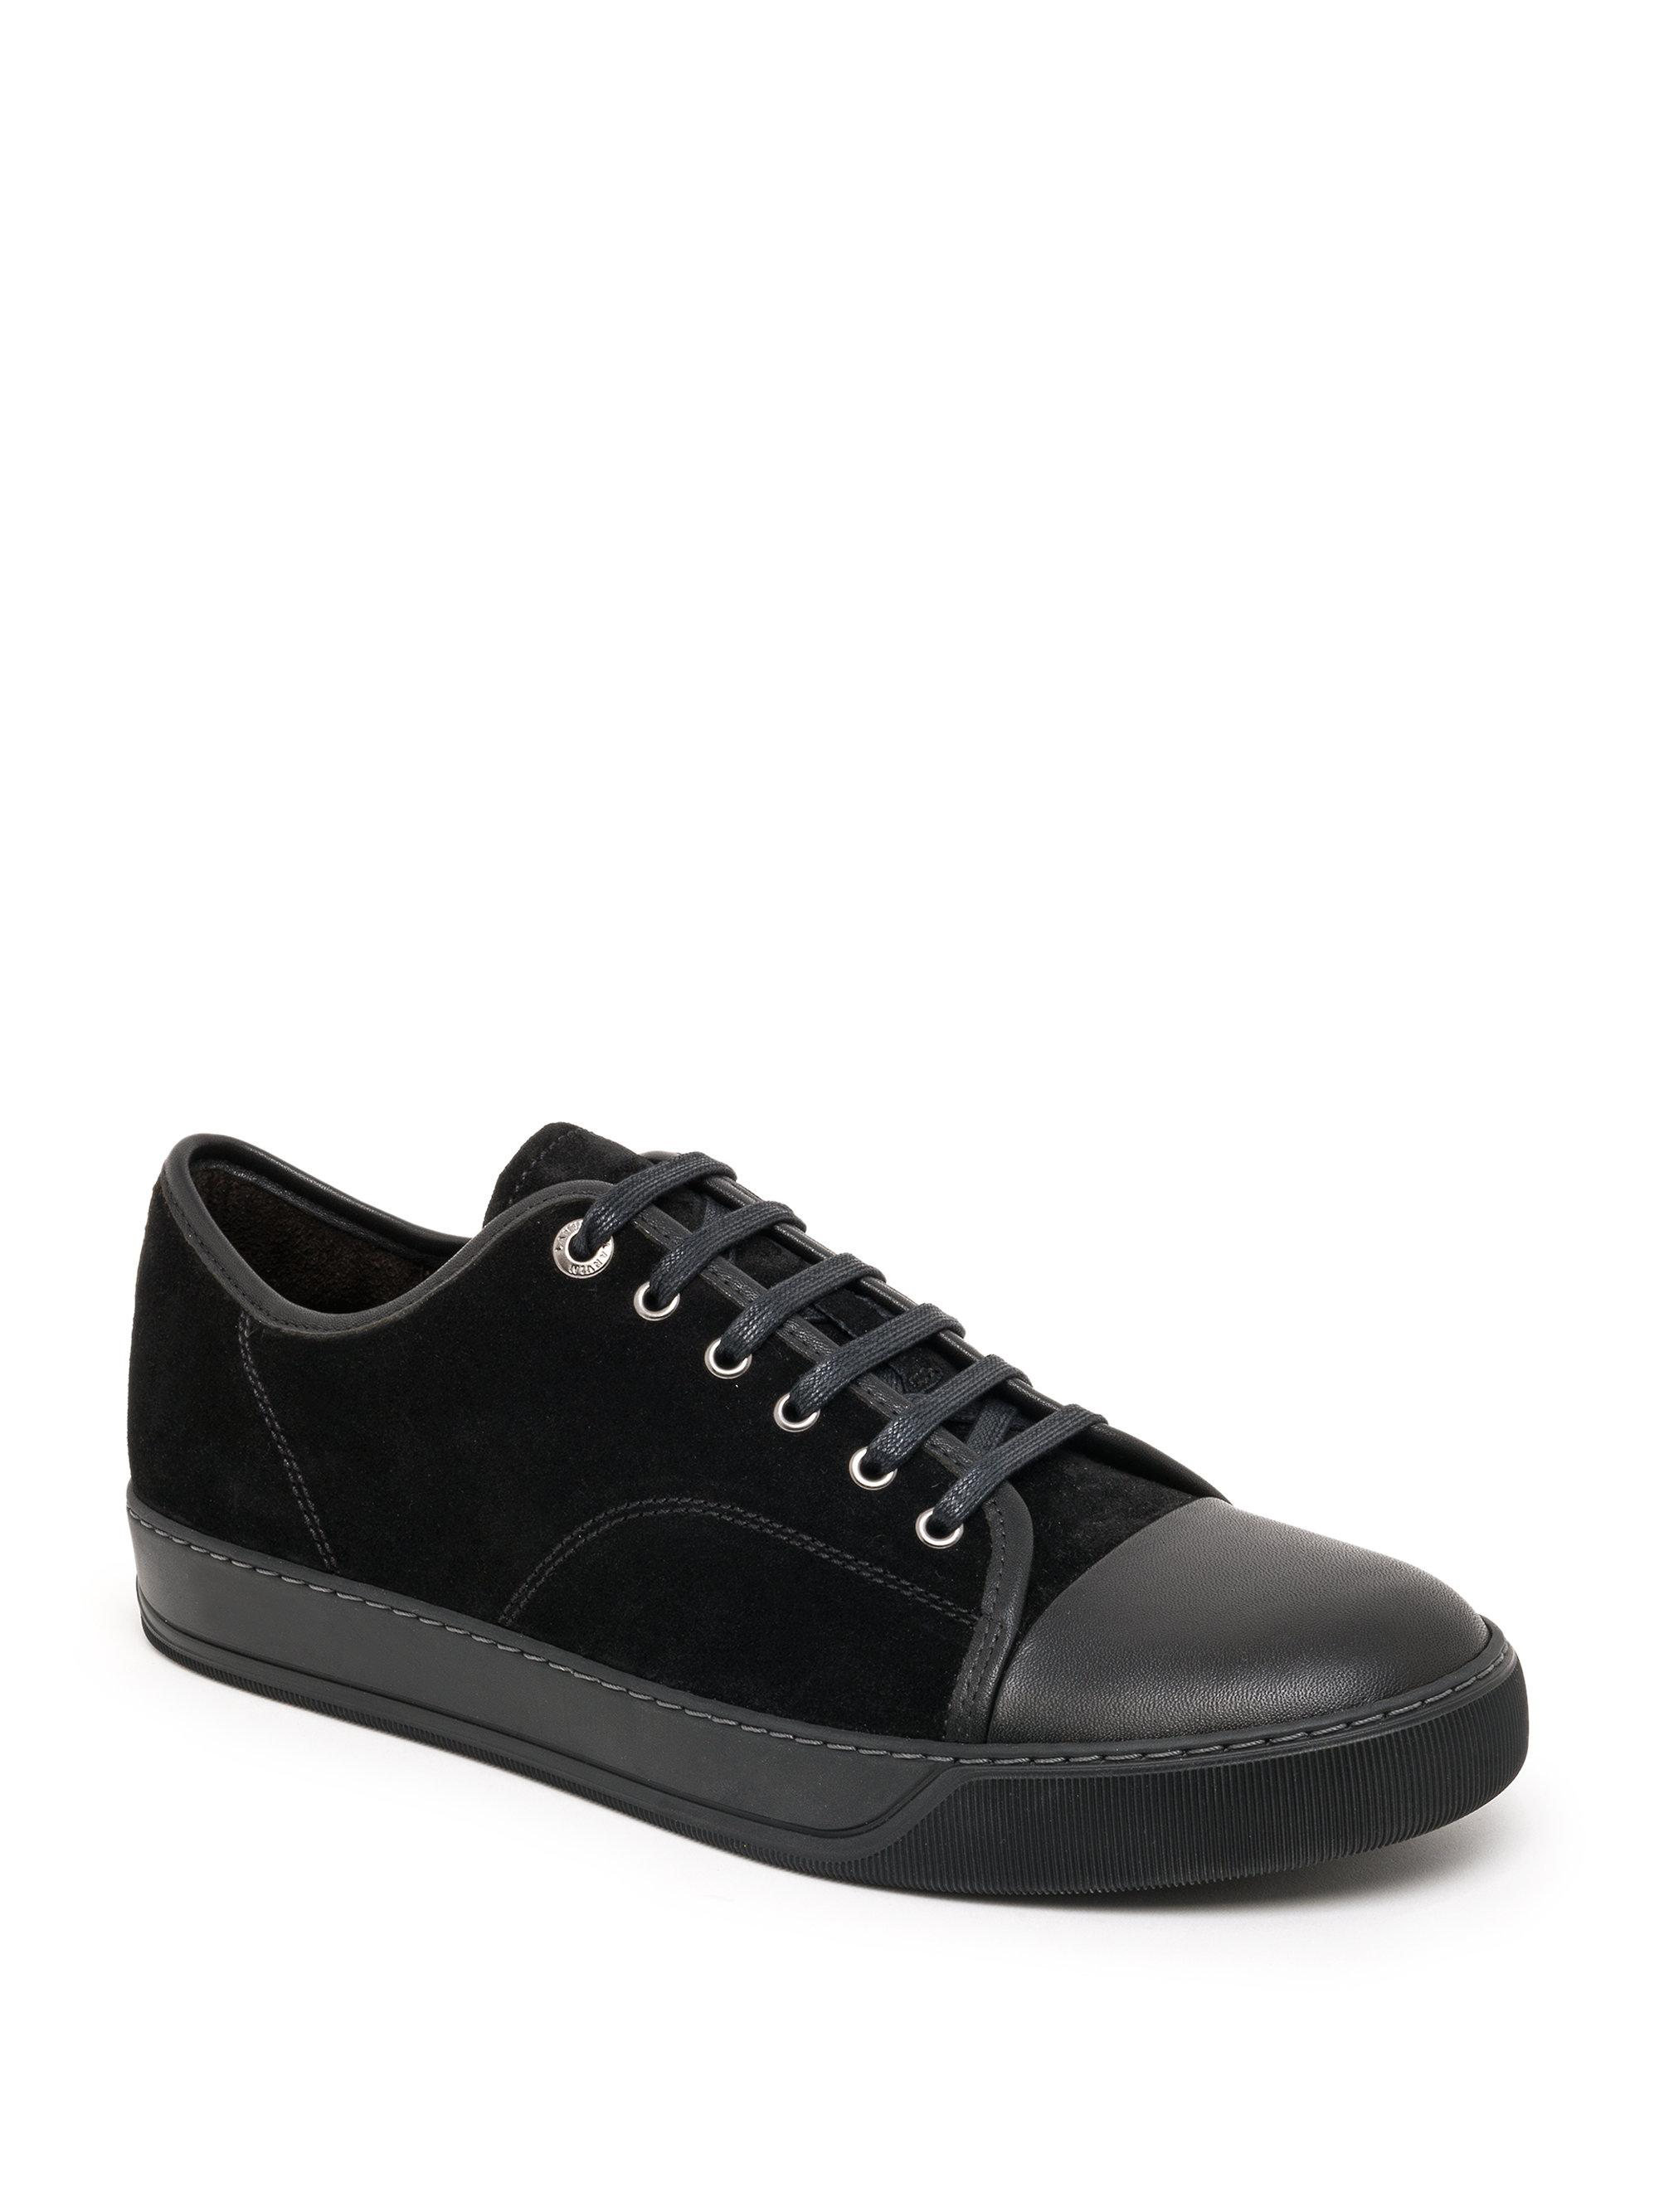 LanvinClassic Suede & Leather Tonal Sneakers NmbWF2